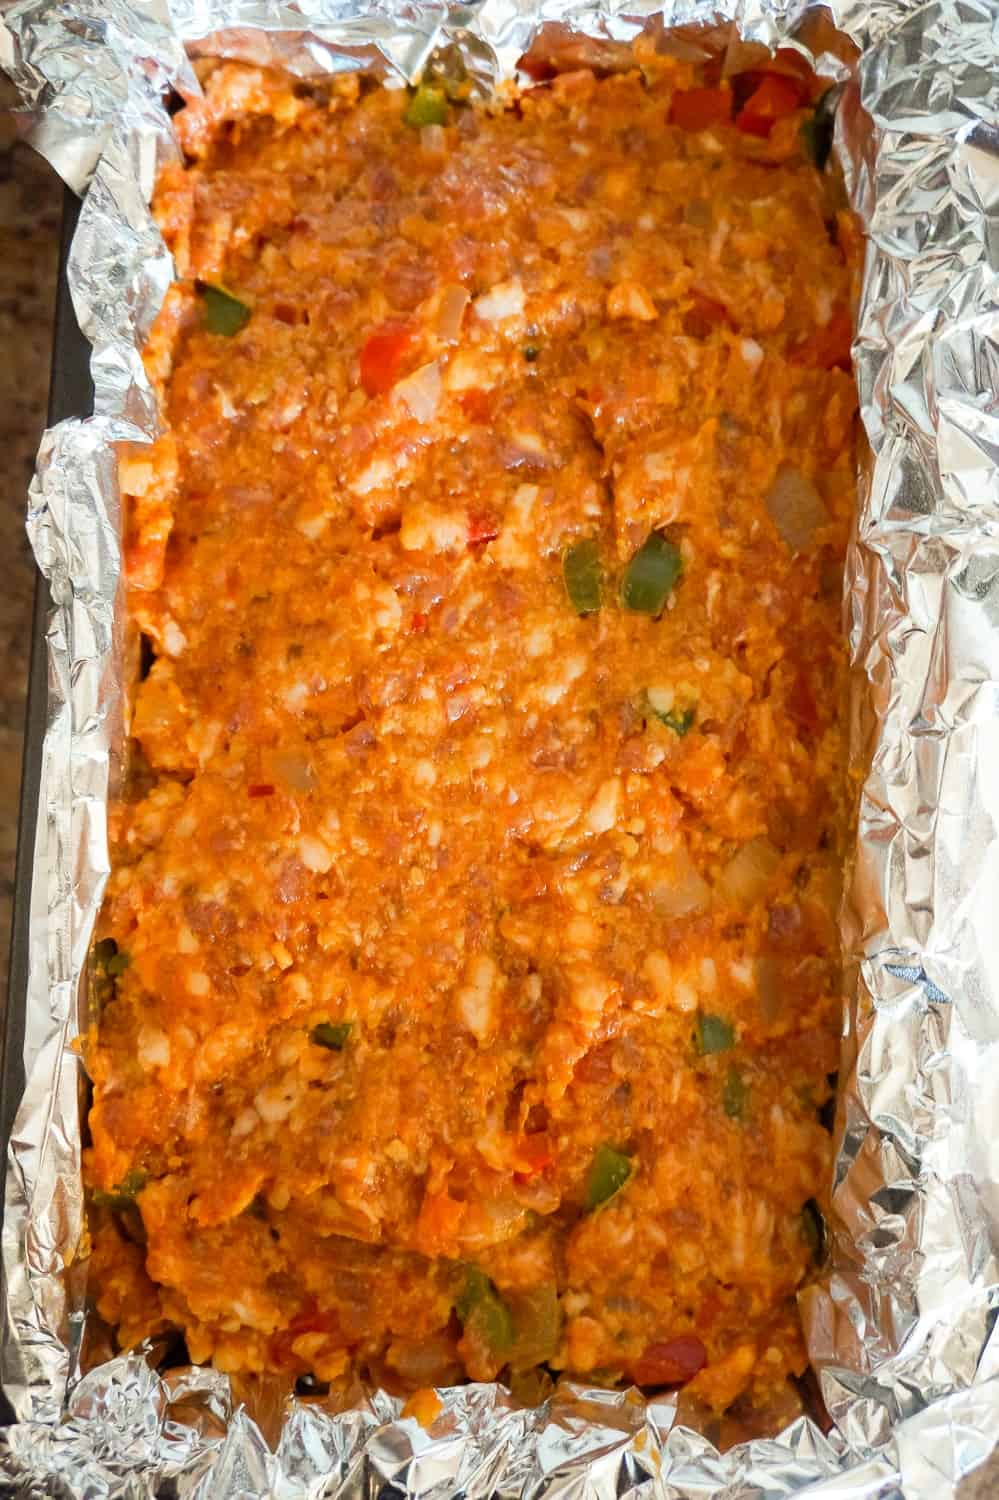 sausage and peppers meatloaf mixture pressed into a loaf pan before baking